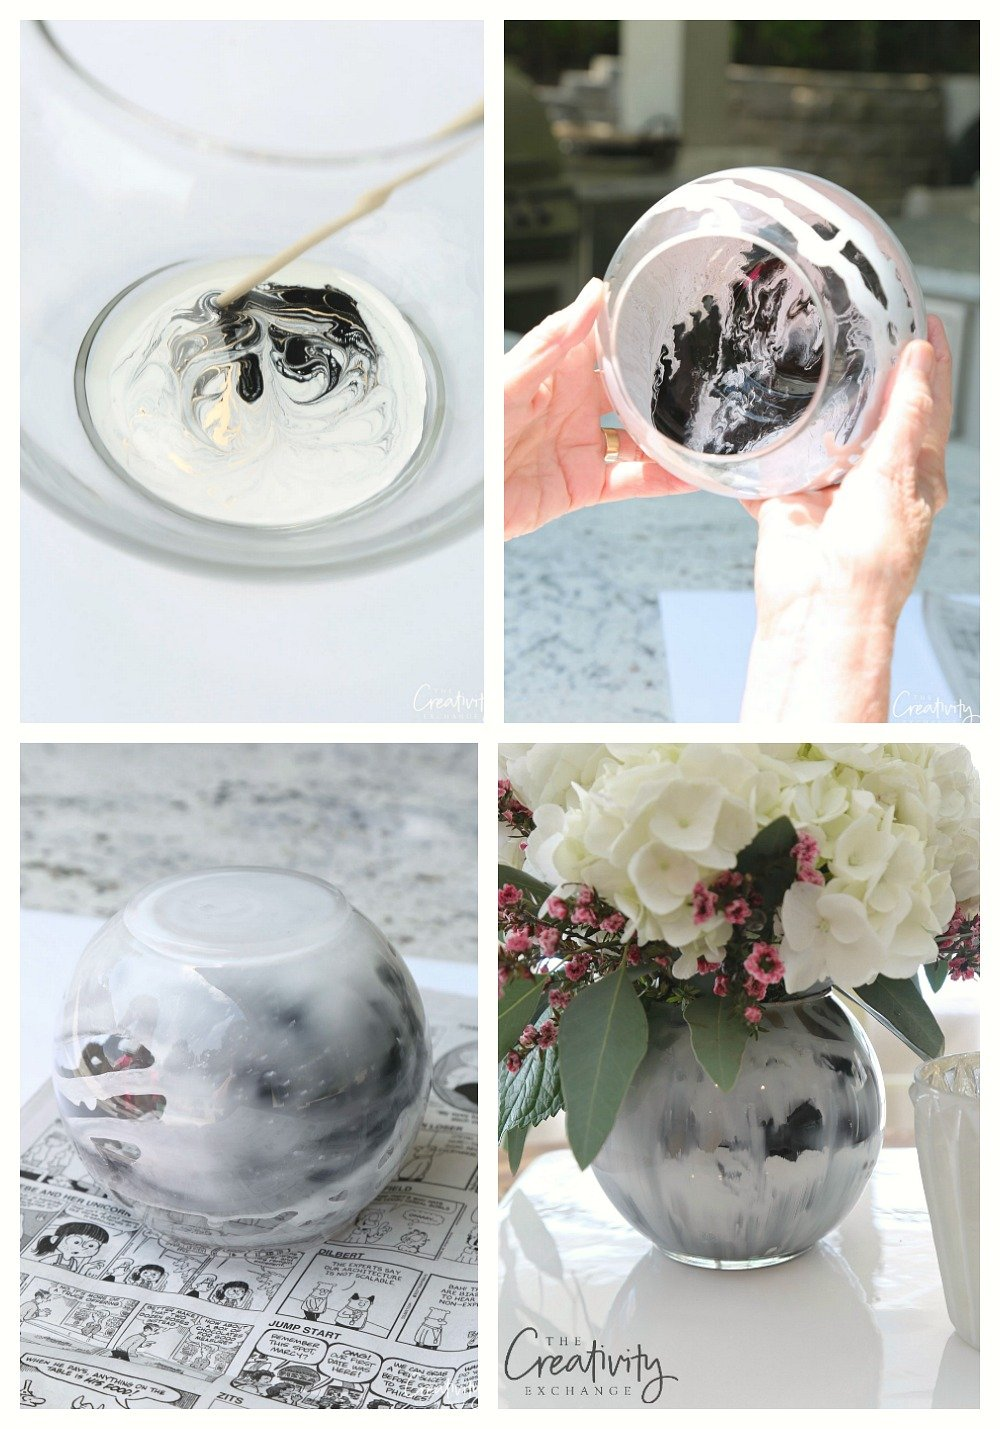 How to make marble swirl vases with enamel paint.